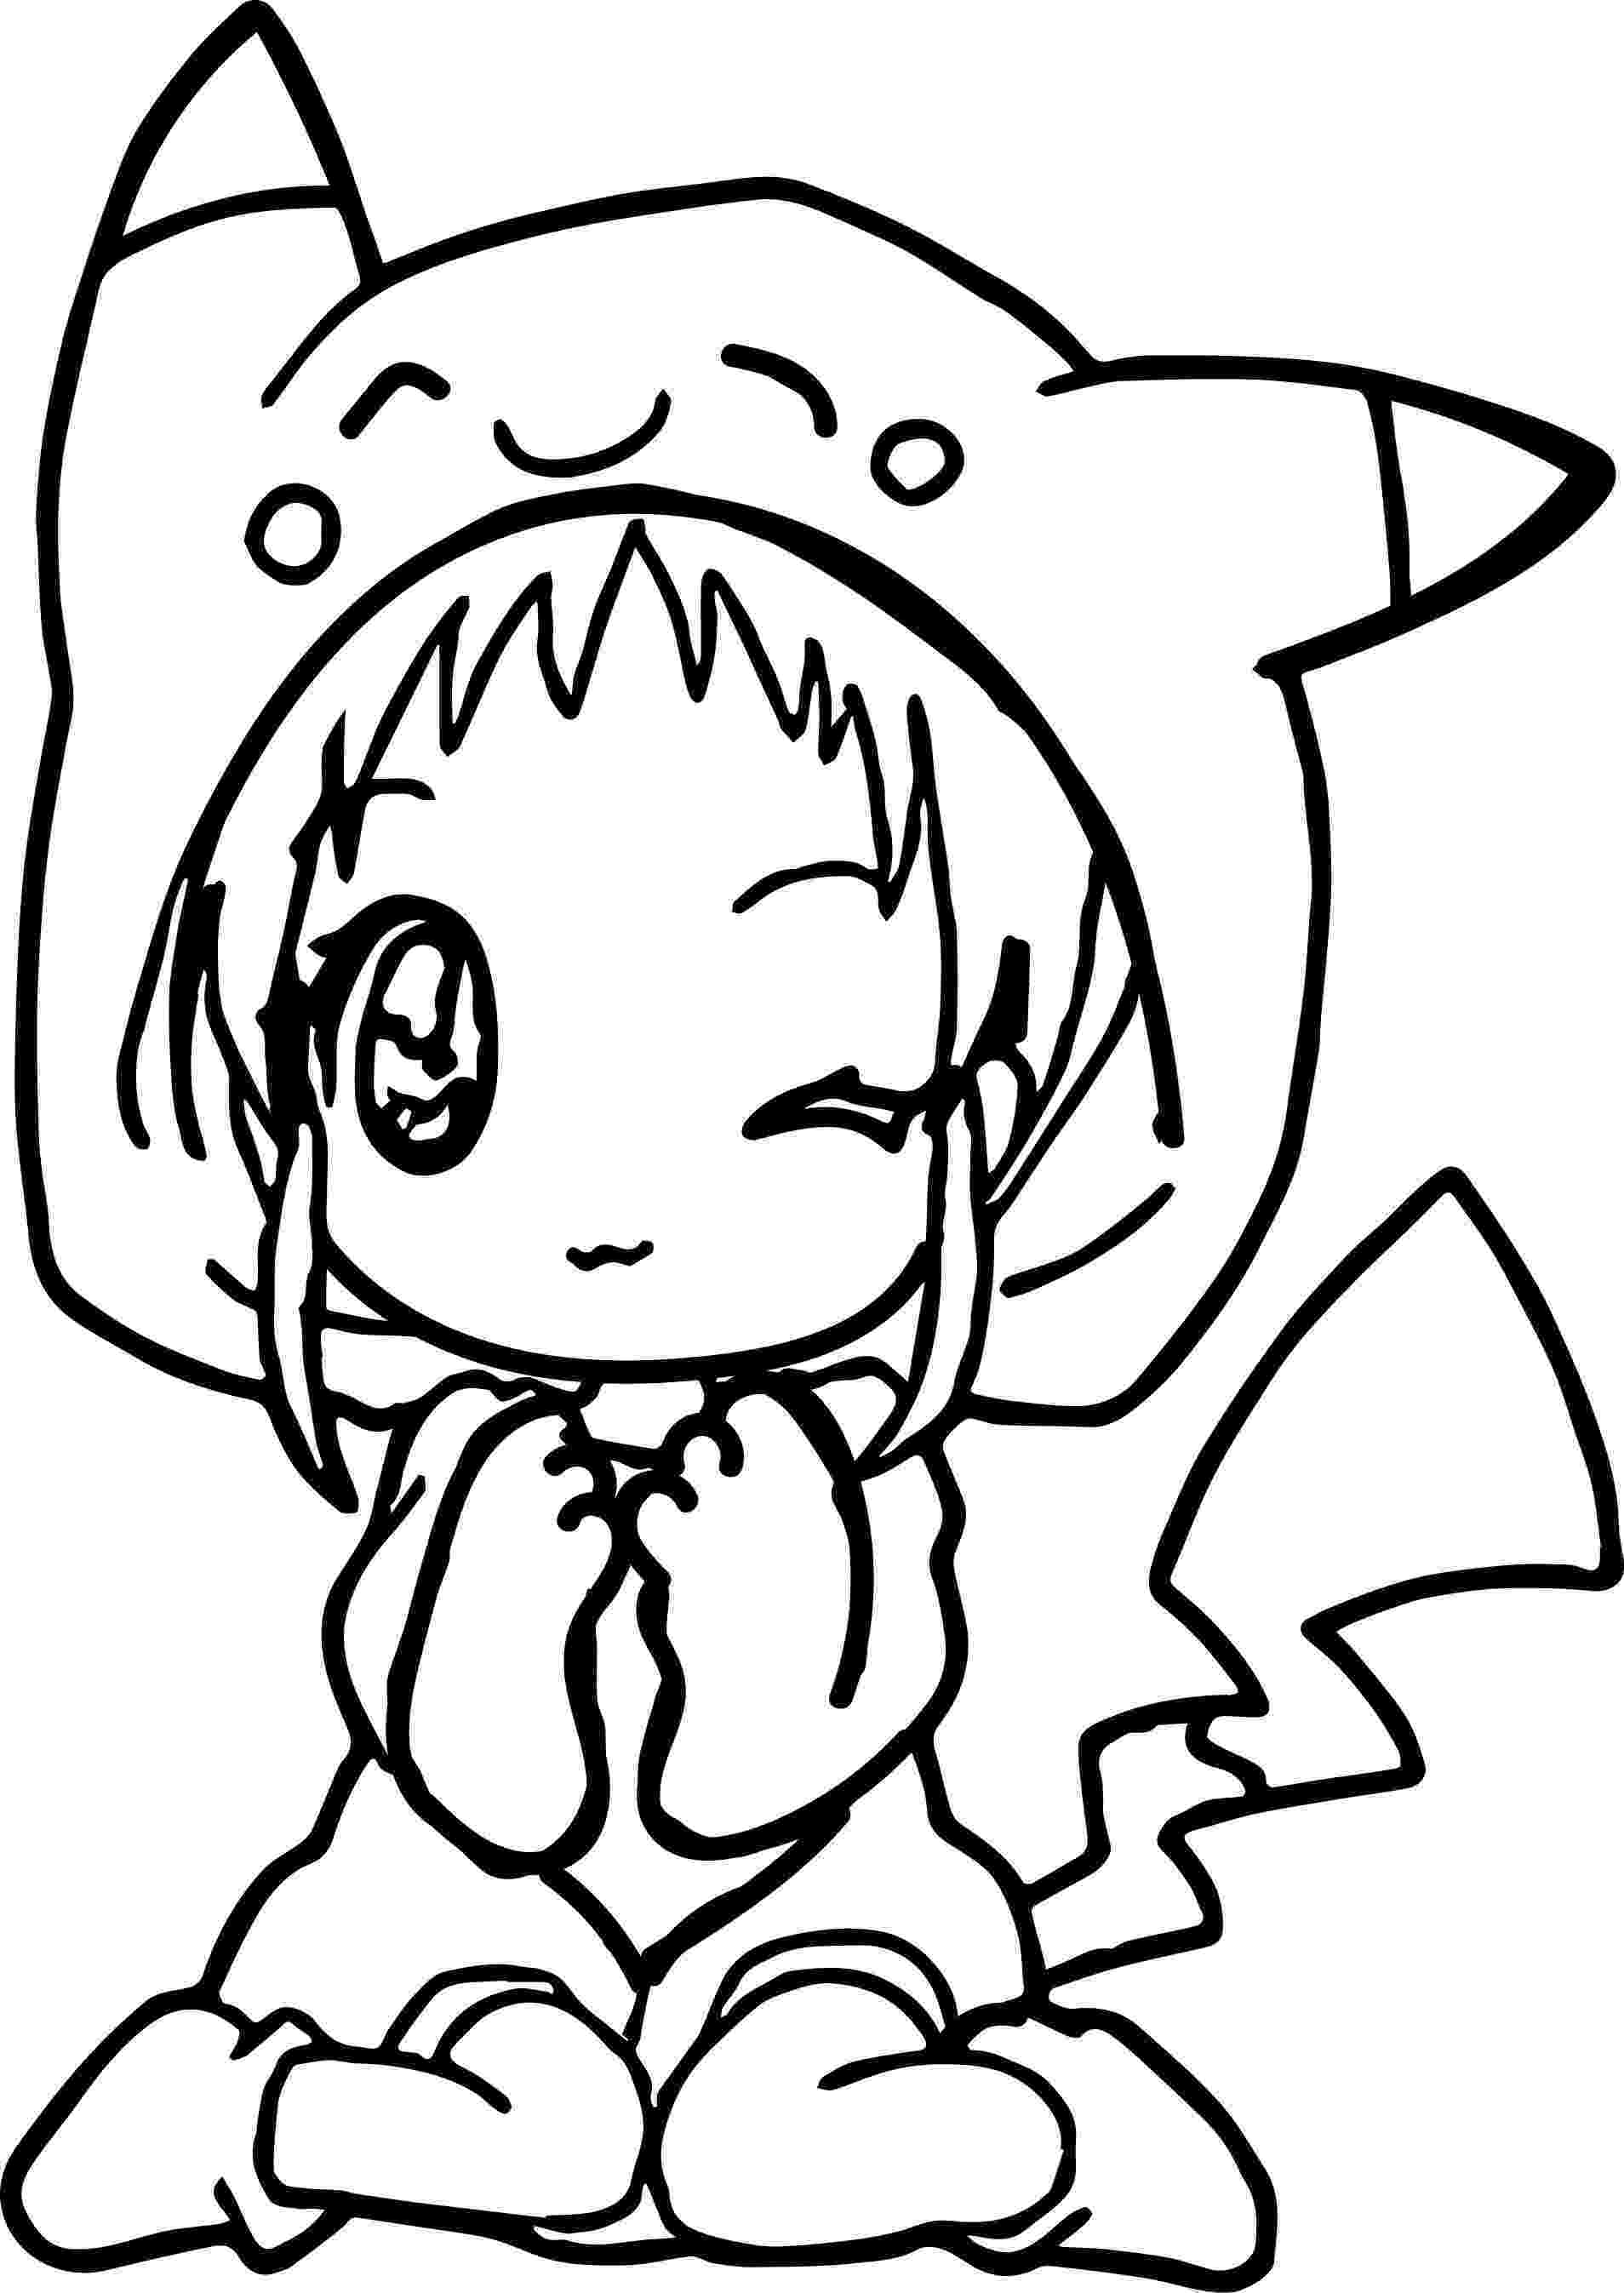 cute anime coloring pages to print chibi anime coloring pages coloring pages anime cute to print